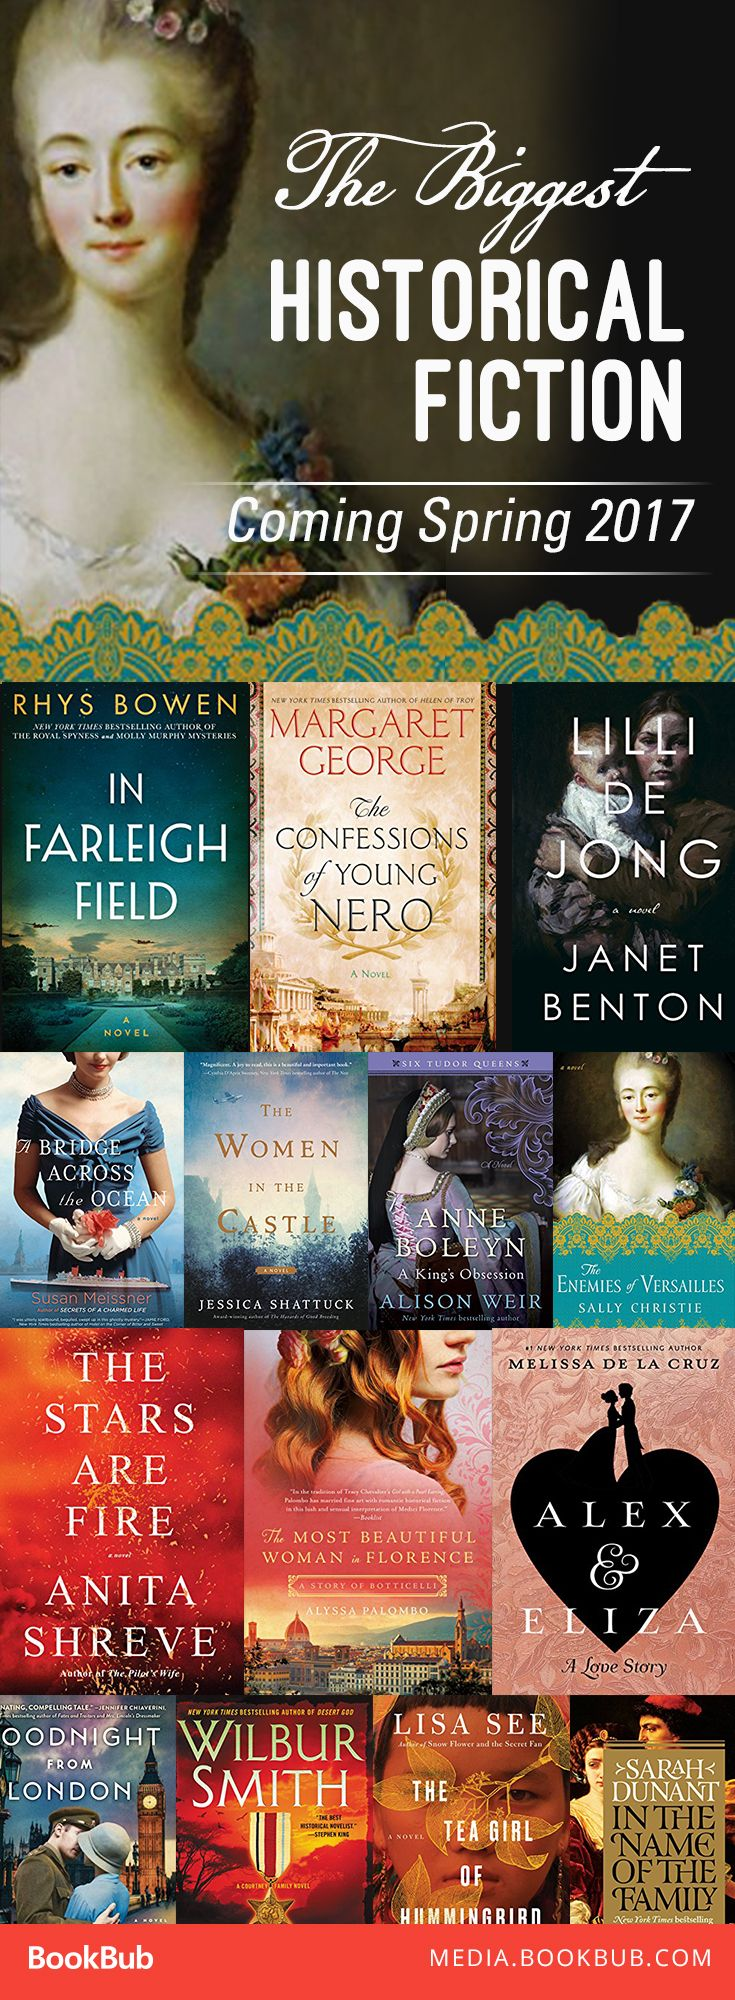 17 historical fiction books worth reading this spring. These novels will transport you from WWII to Tudor England to Imperial Rome.